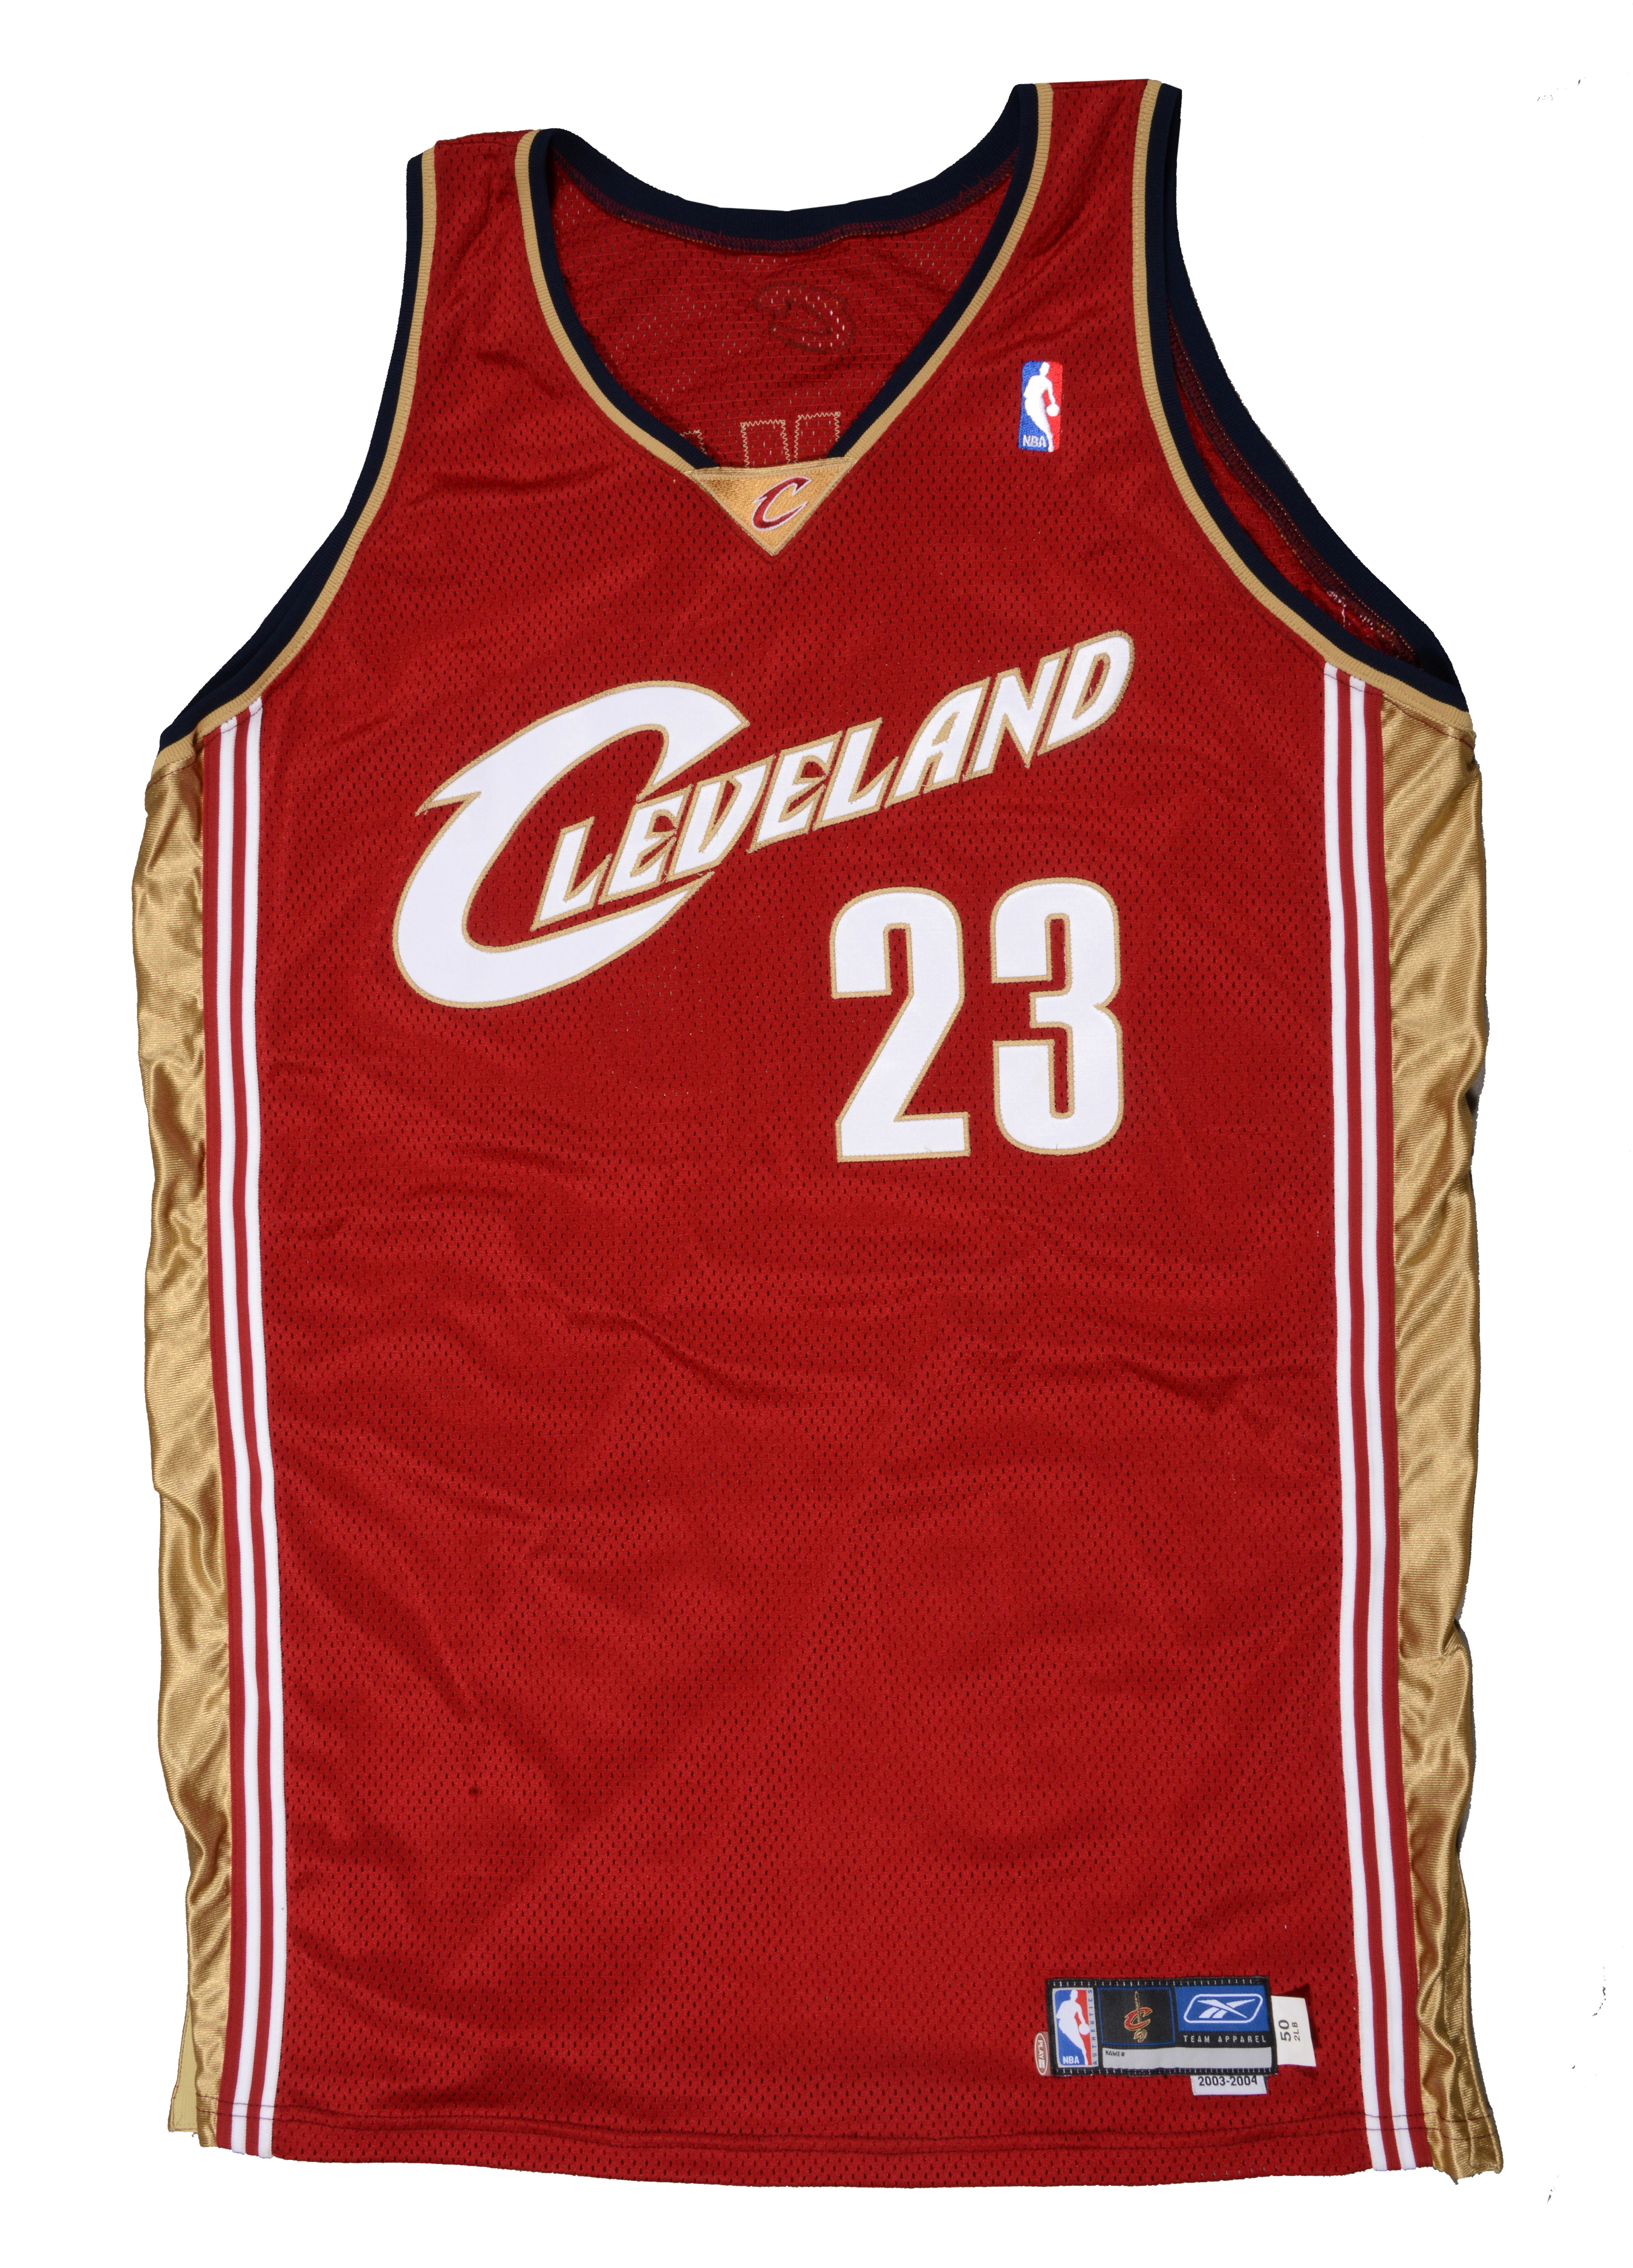 0f5f637c4 ... Swingman Jerseys Shorts NBA Suits All Featured Lots Nike Lebron James Cleveland  Cavaliers ...